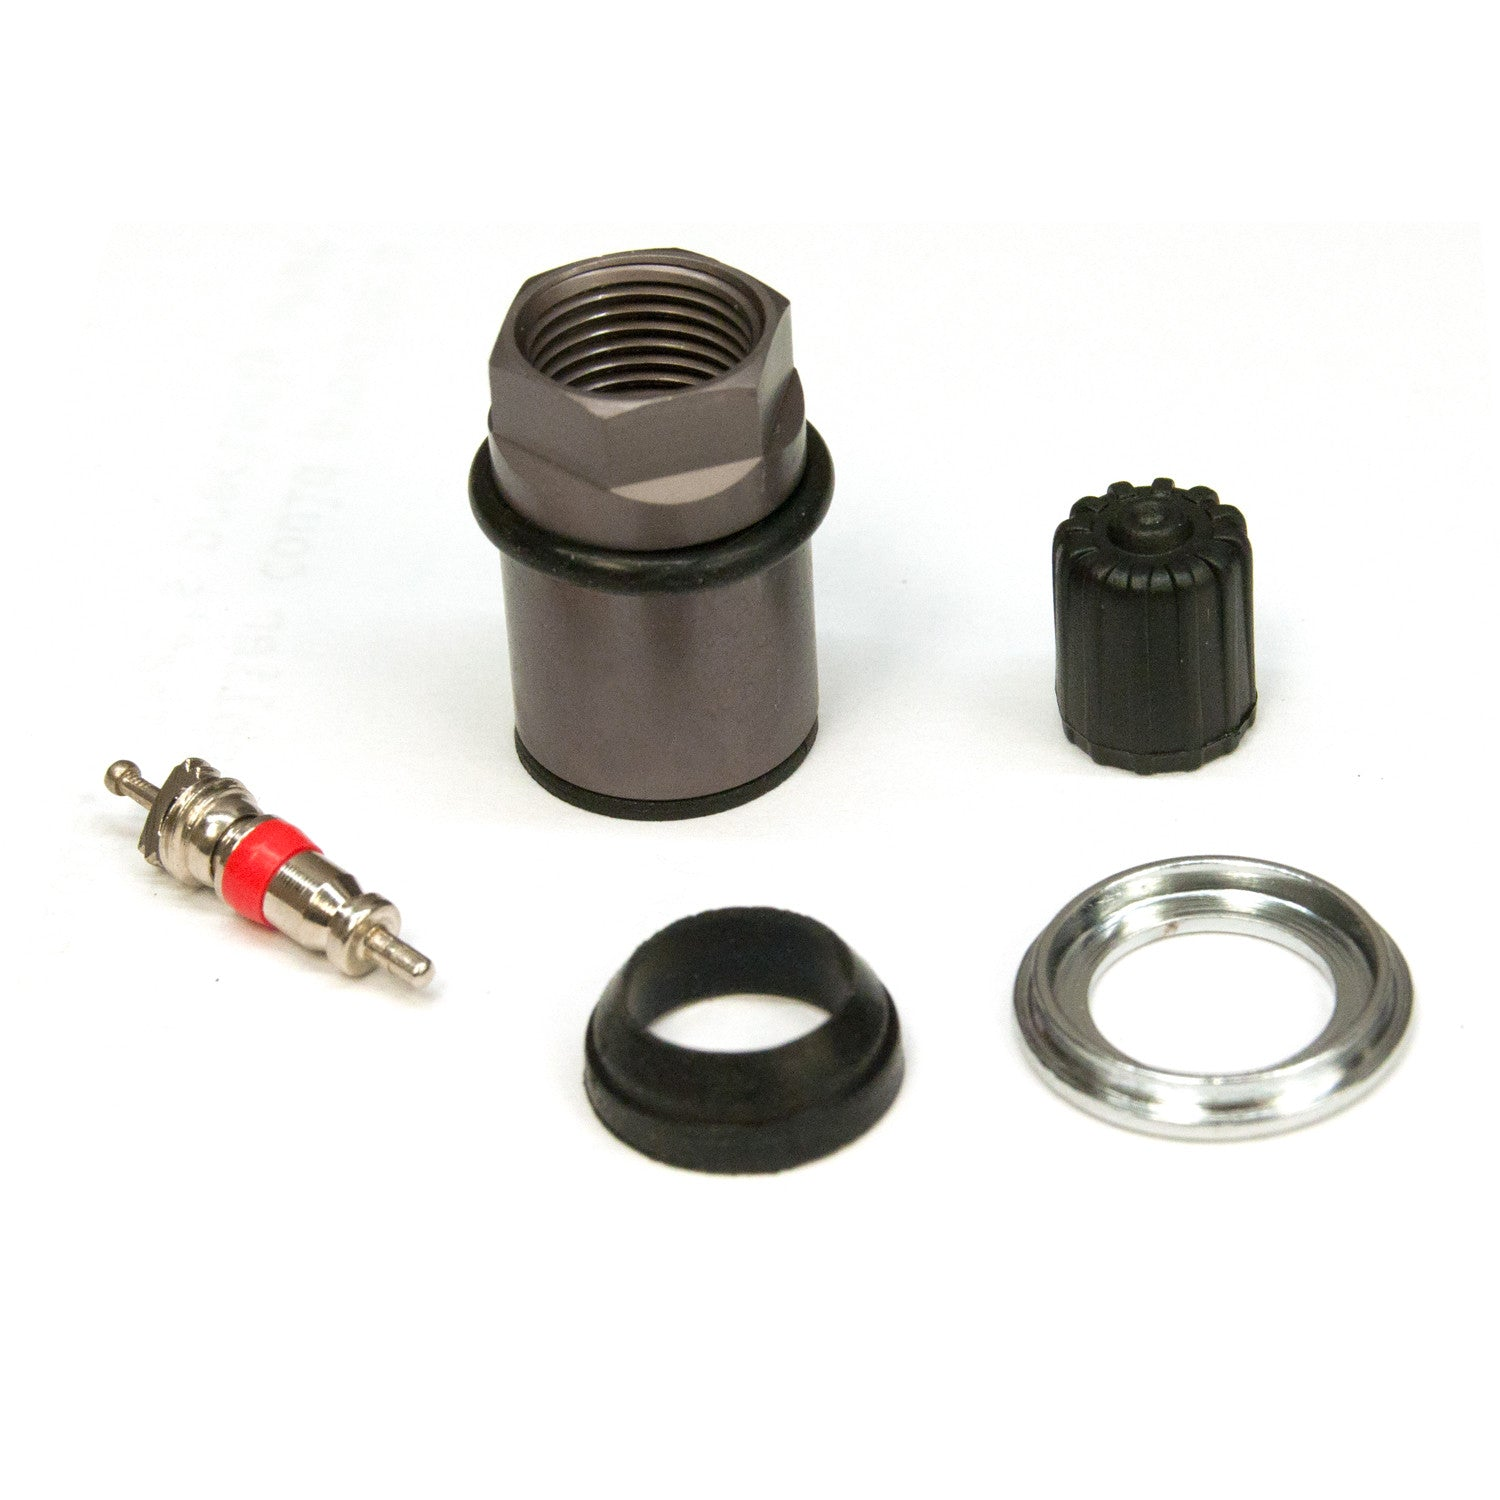 TPMS Service Kit (Volkswagen) (Box of 10) (17-20207AK)